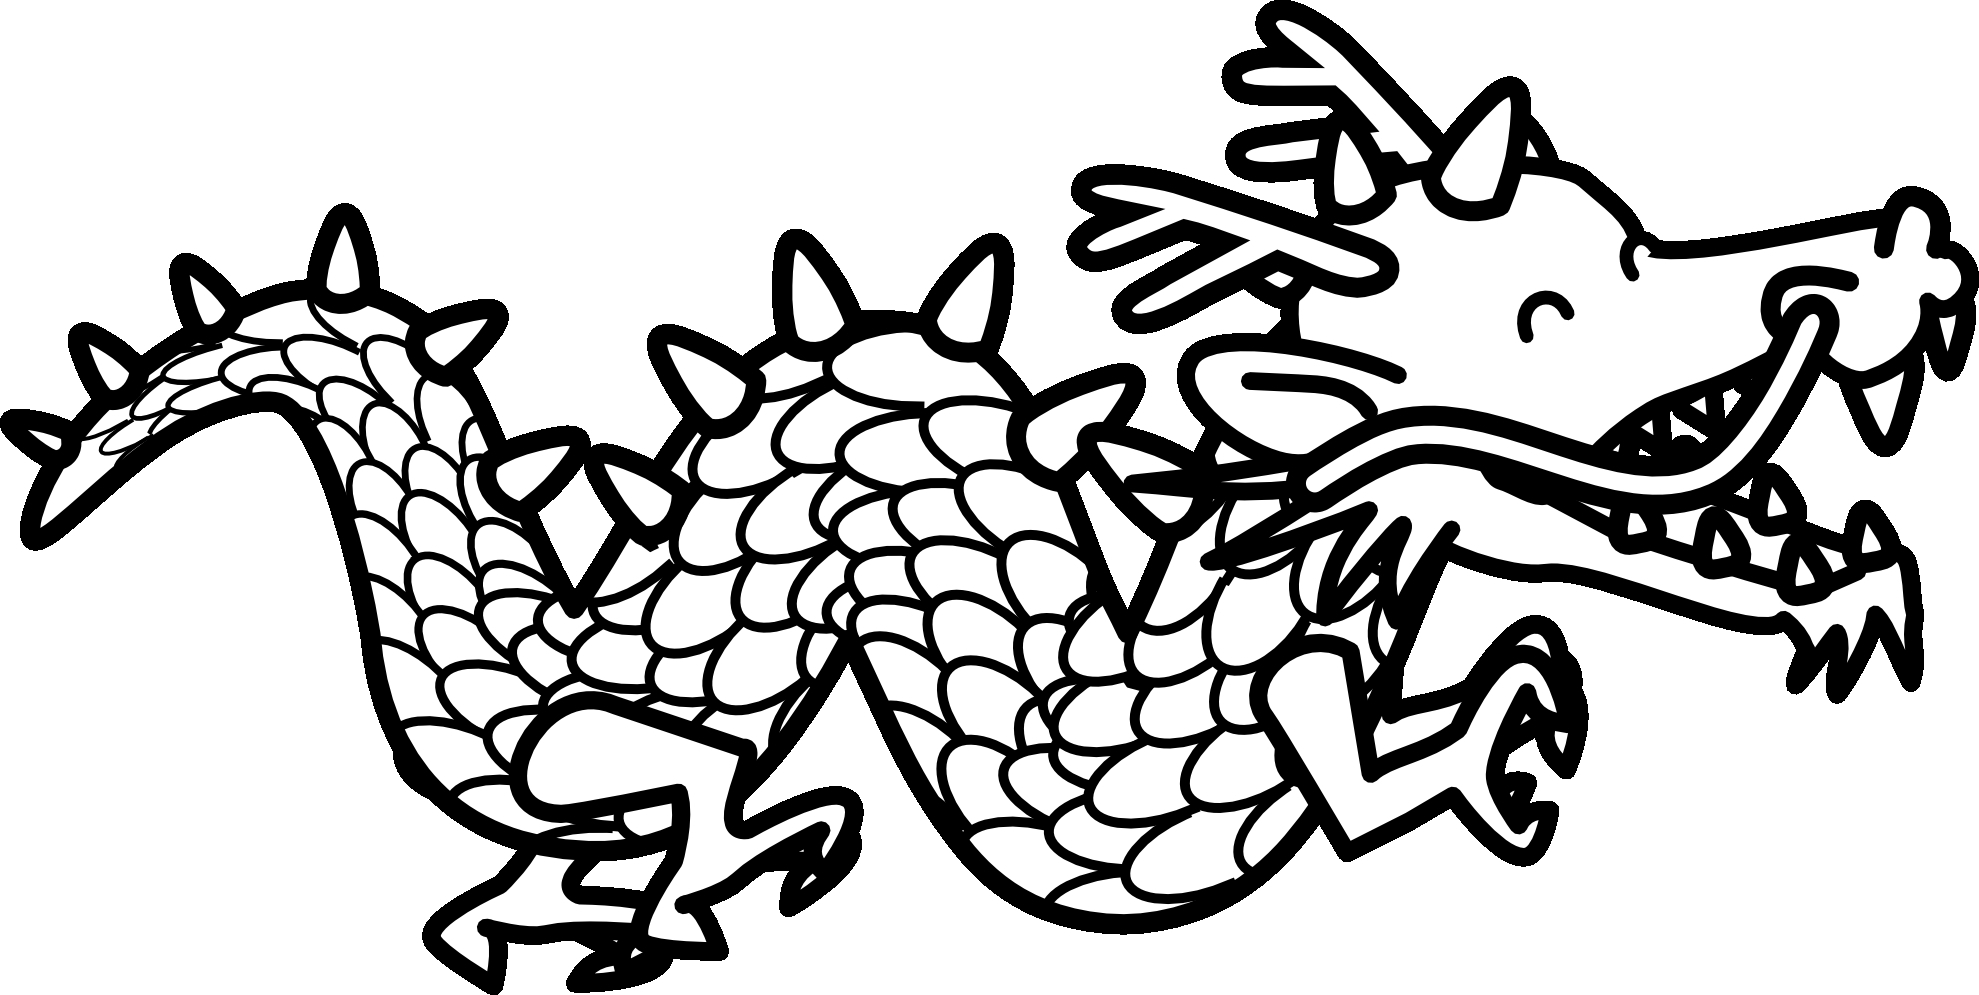 Chinese dragon clipart Lovely Chinese Dragon Black And White.